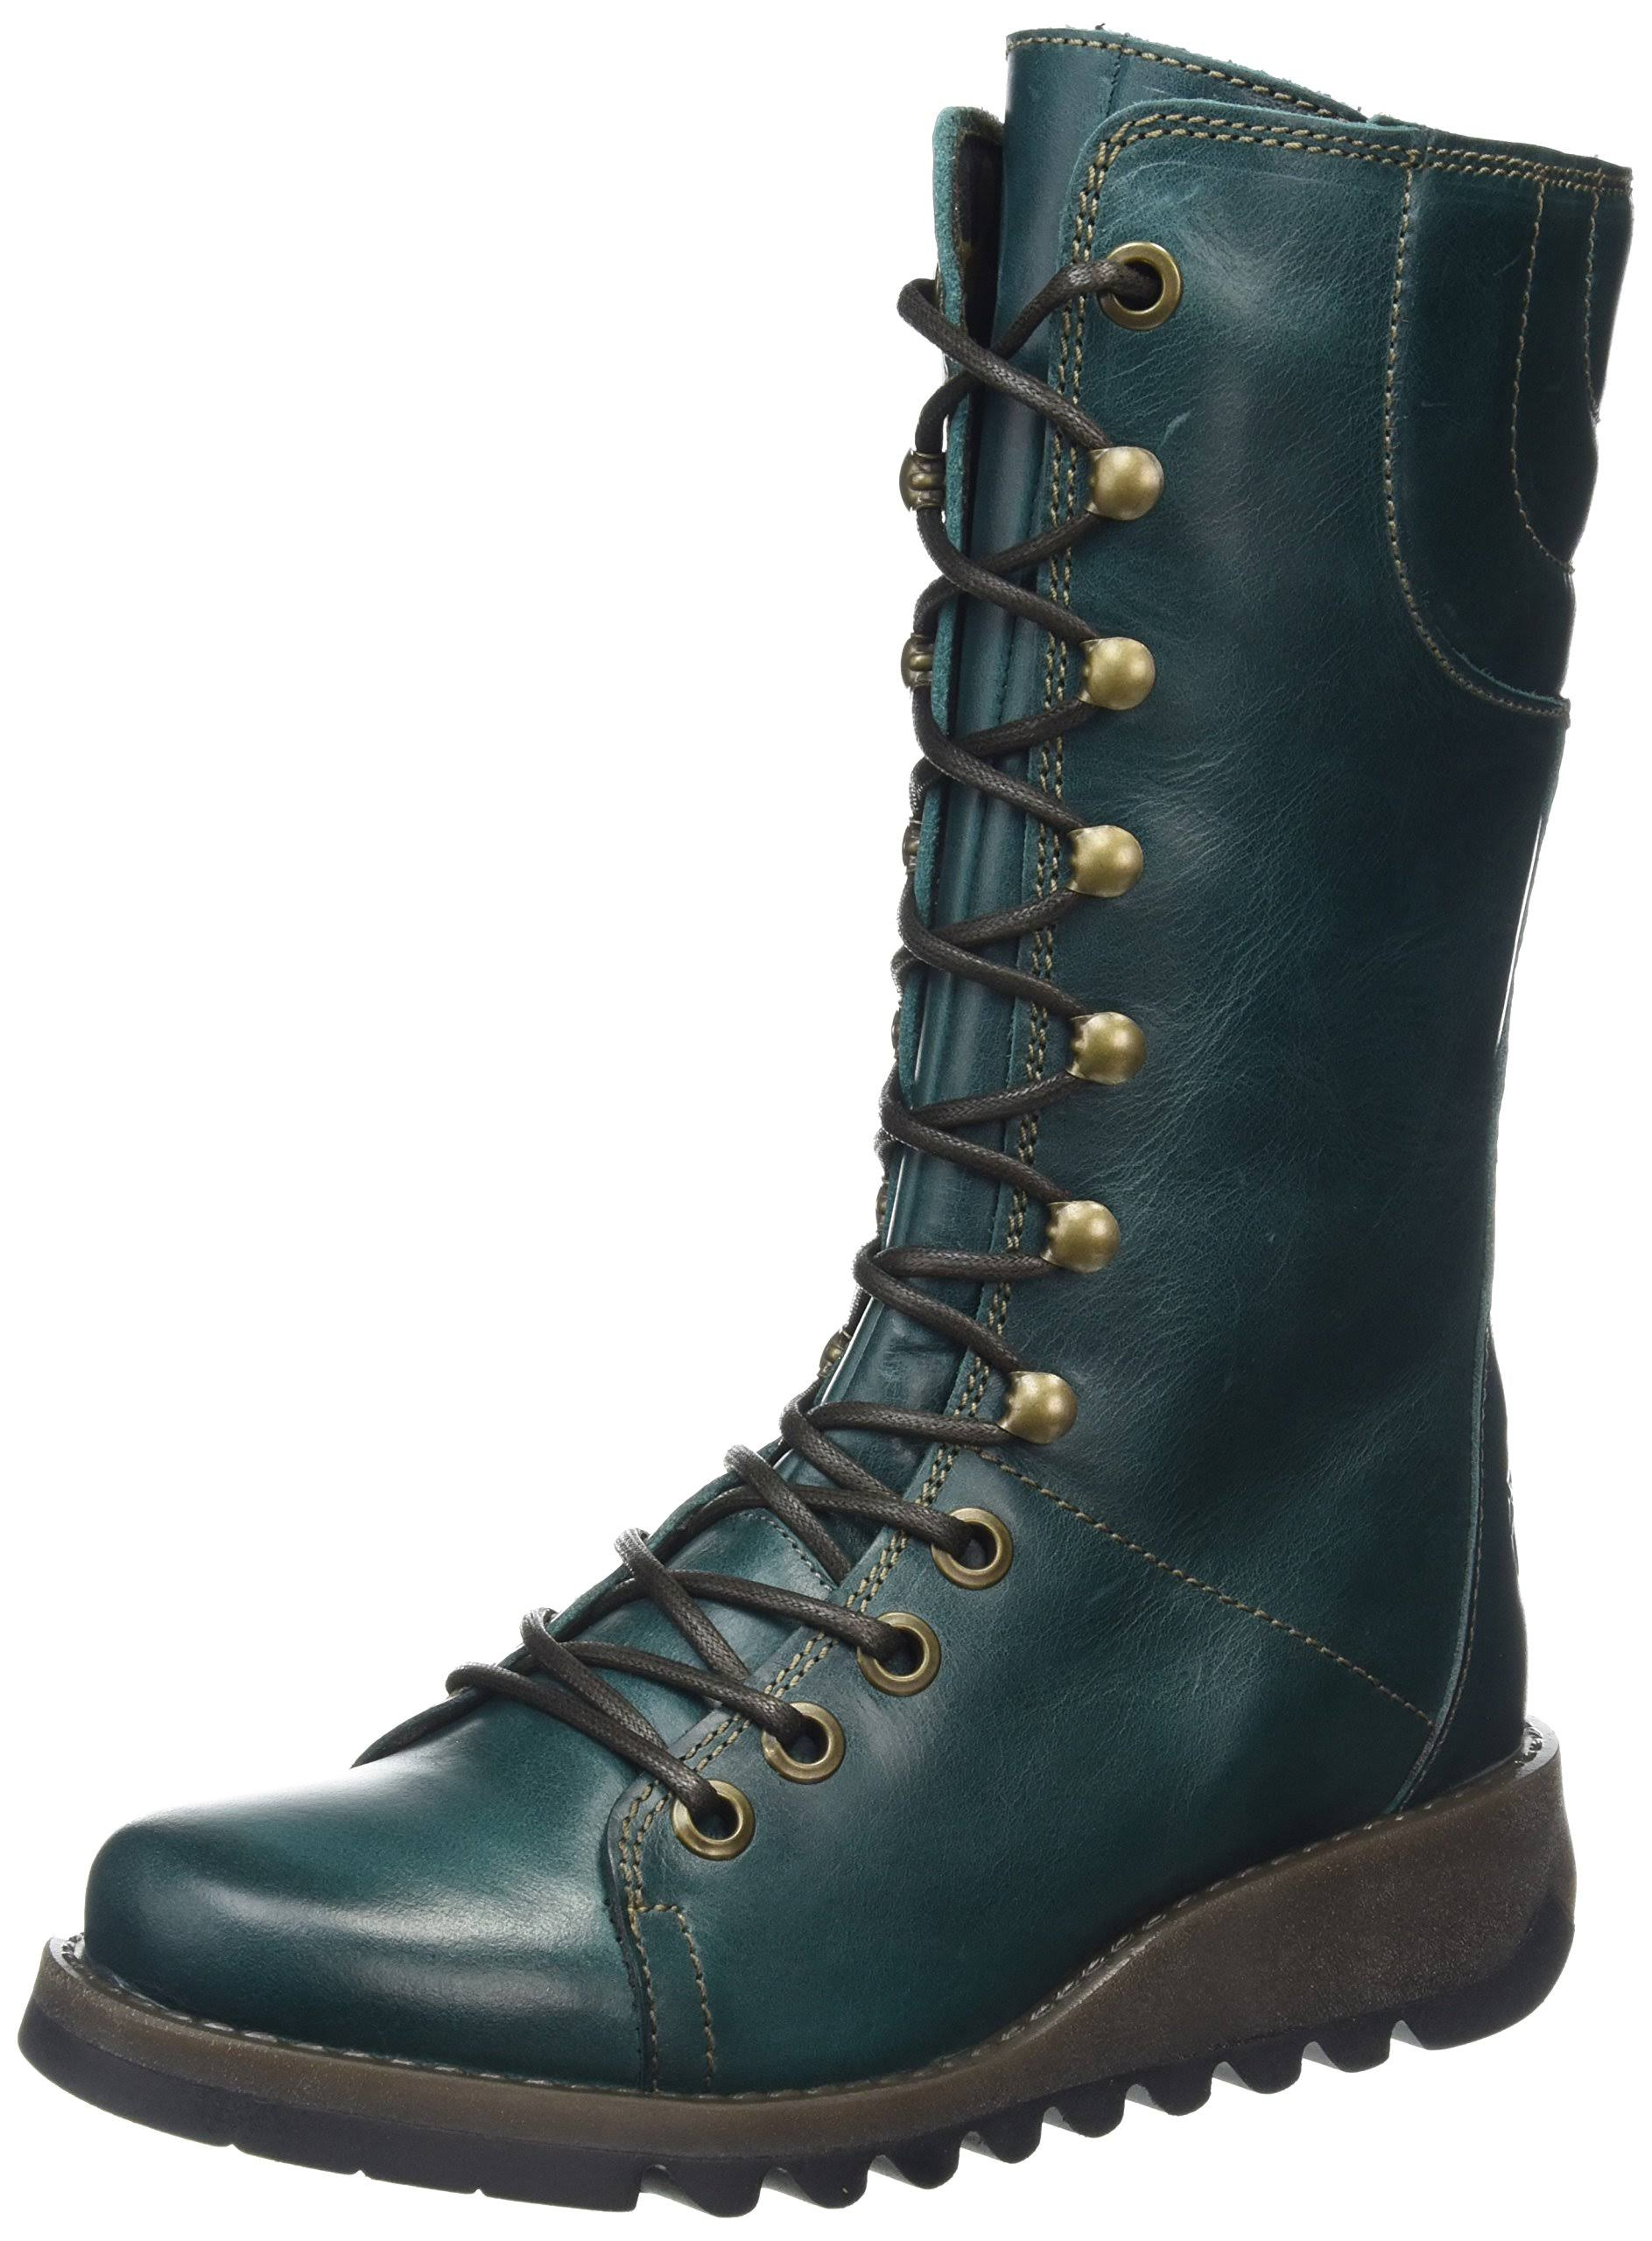 8 Uk Petrol Fly Eu London Women's Boots Green 41 Ster768fly petrol fwFBAqHw